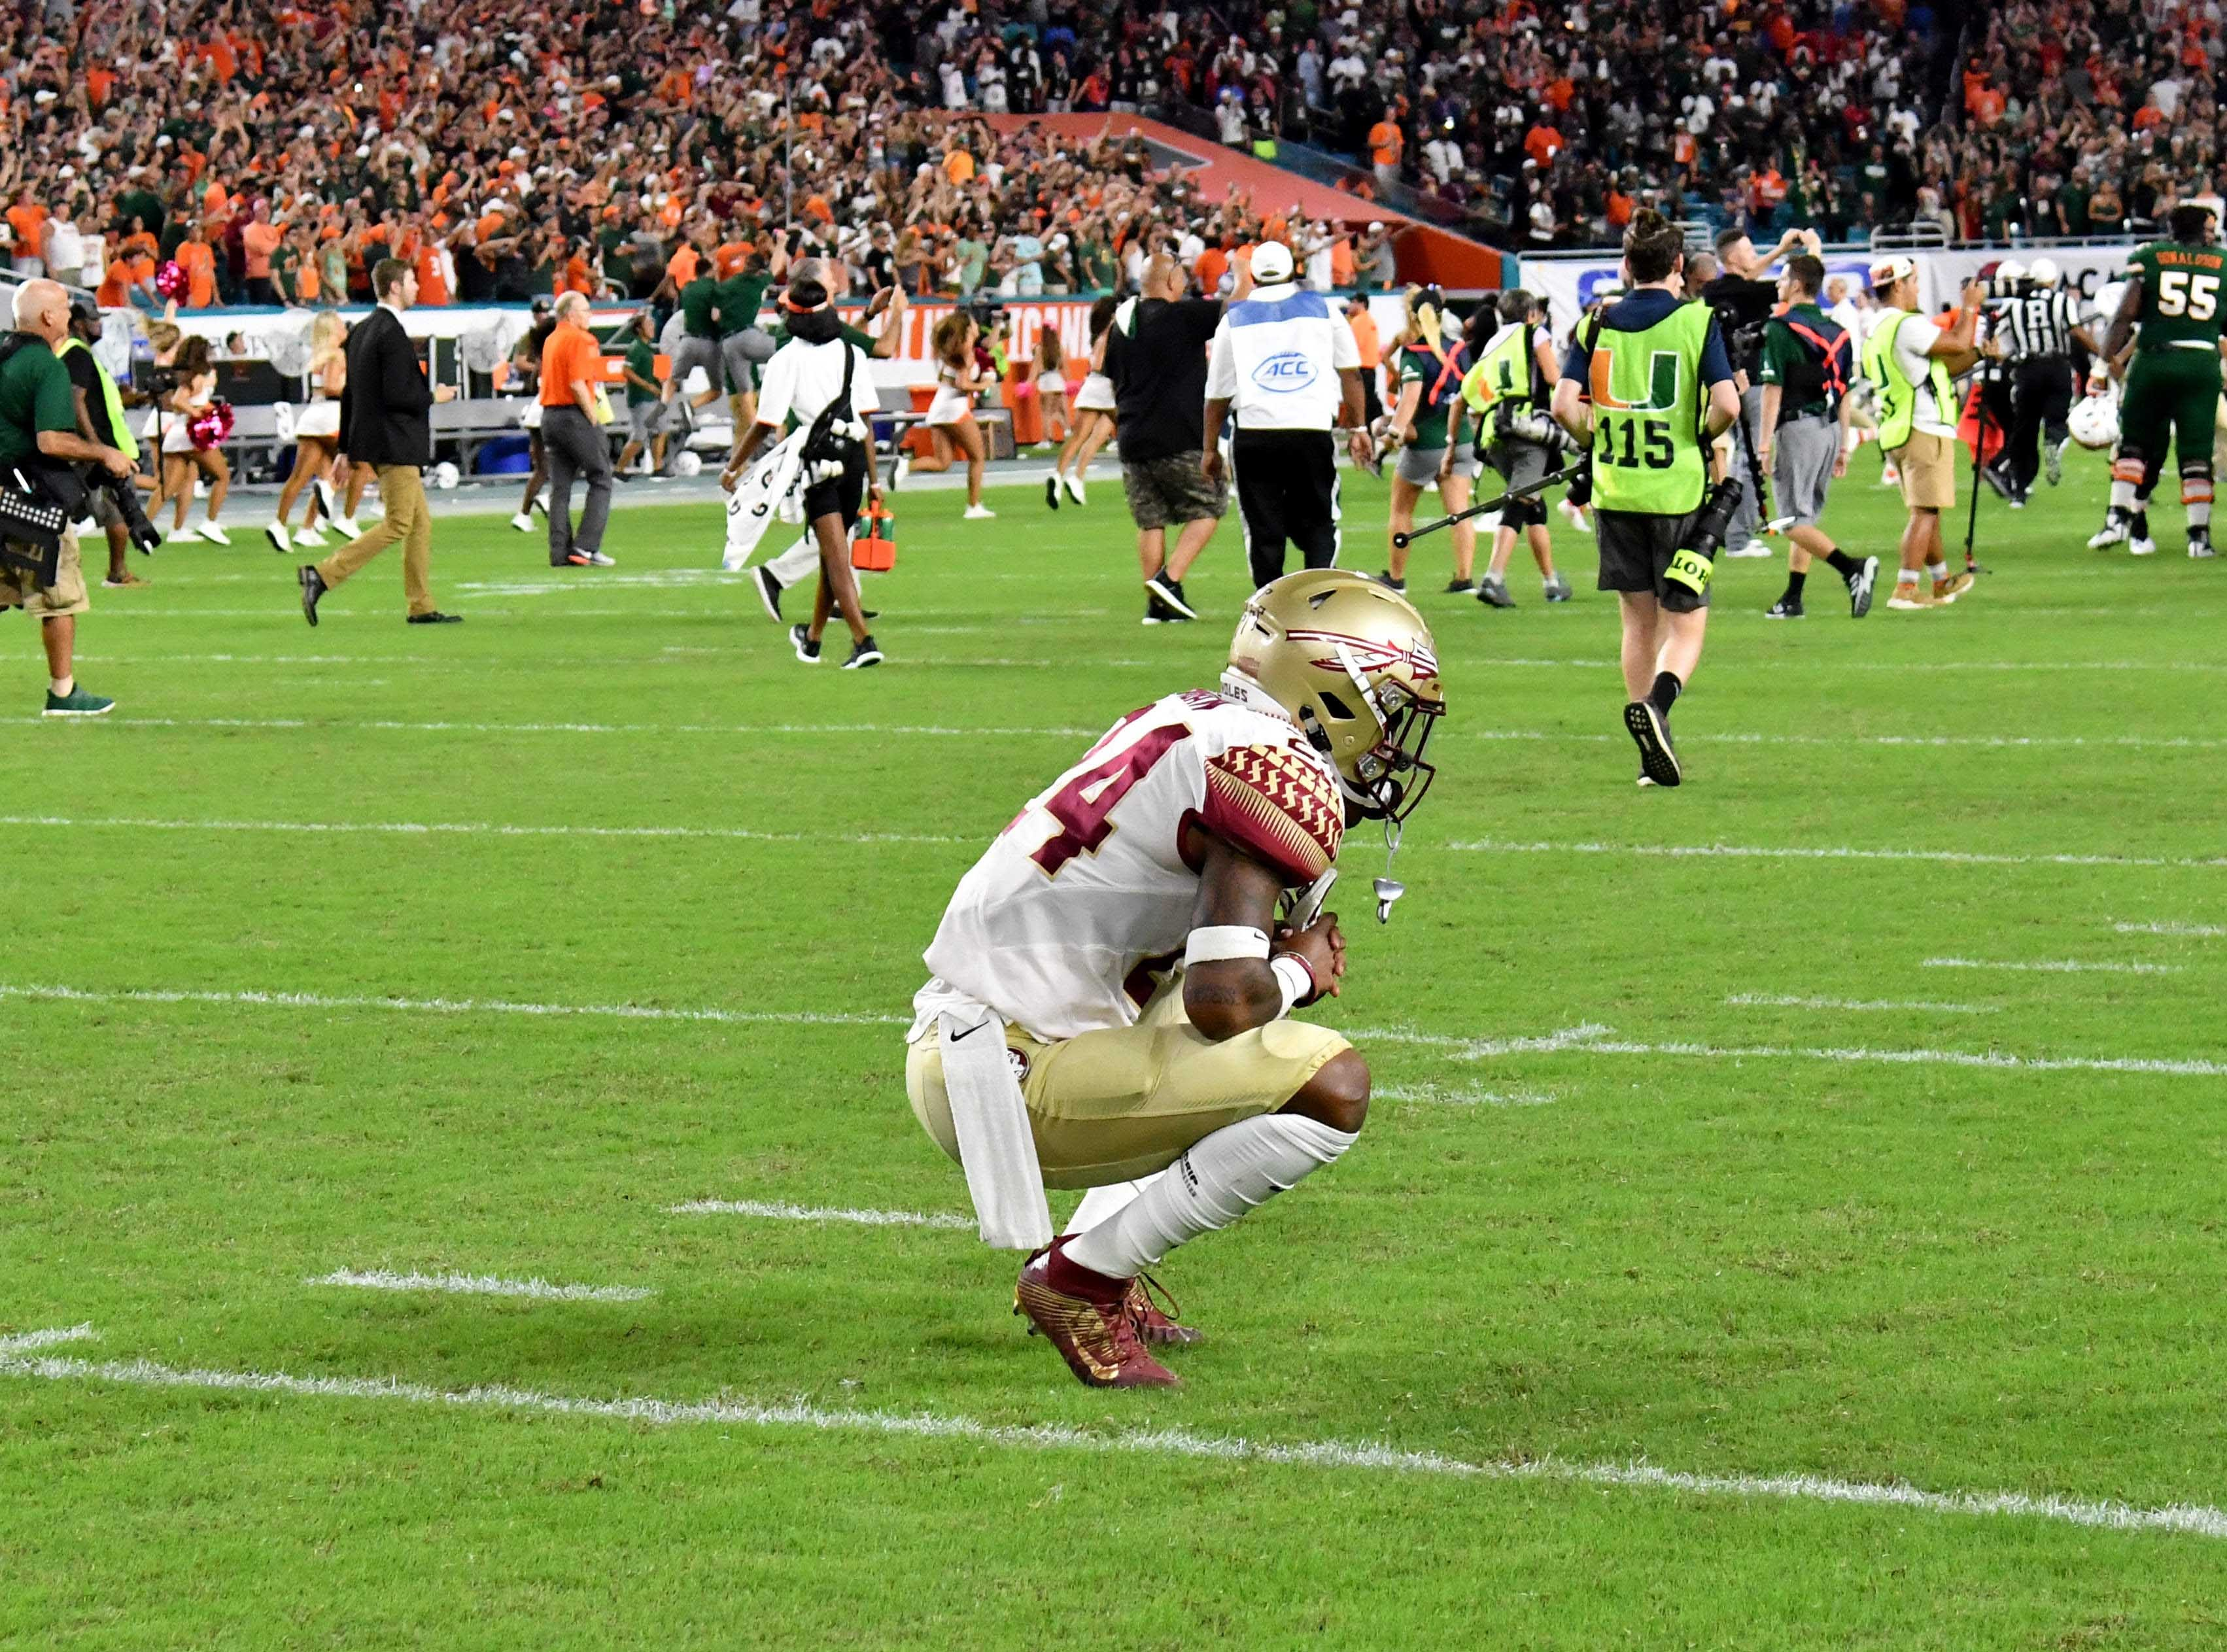 Oct 6, 2018; Miami Gardens, FL, USA; Florida State Seminoles defensive back Cyrus Fagan (24) reacts after the game Miami Hurricanes at Hard Rock Stadium. Mandatory Credit: Steve Mitchell-USA TODAY Sports